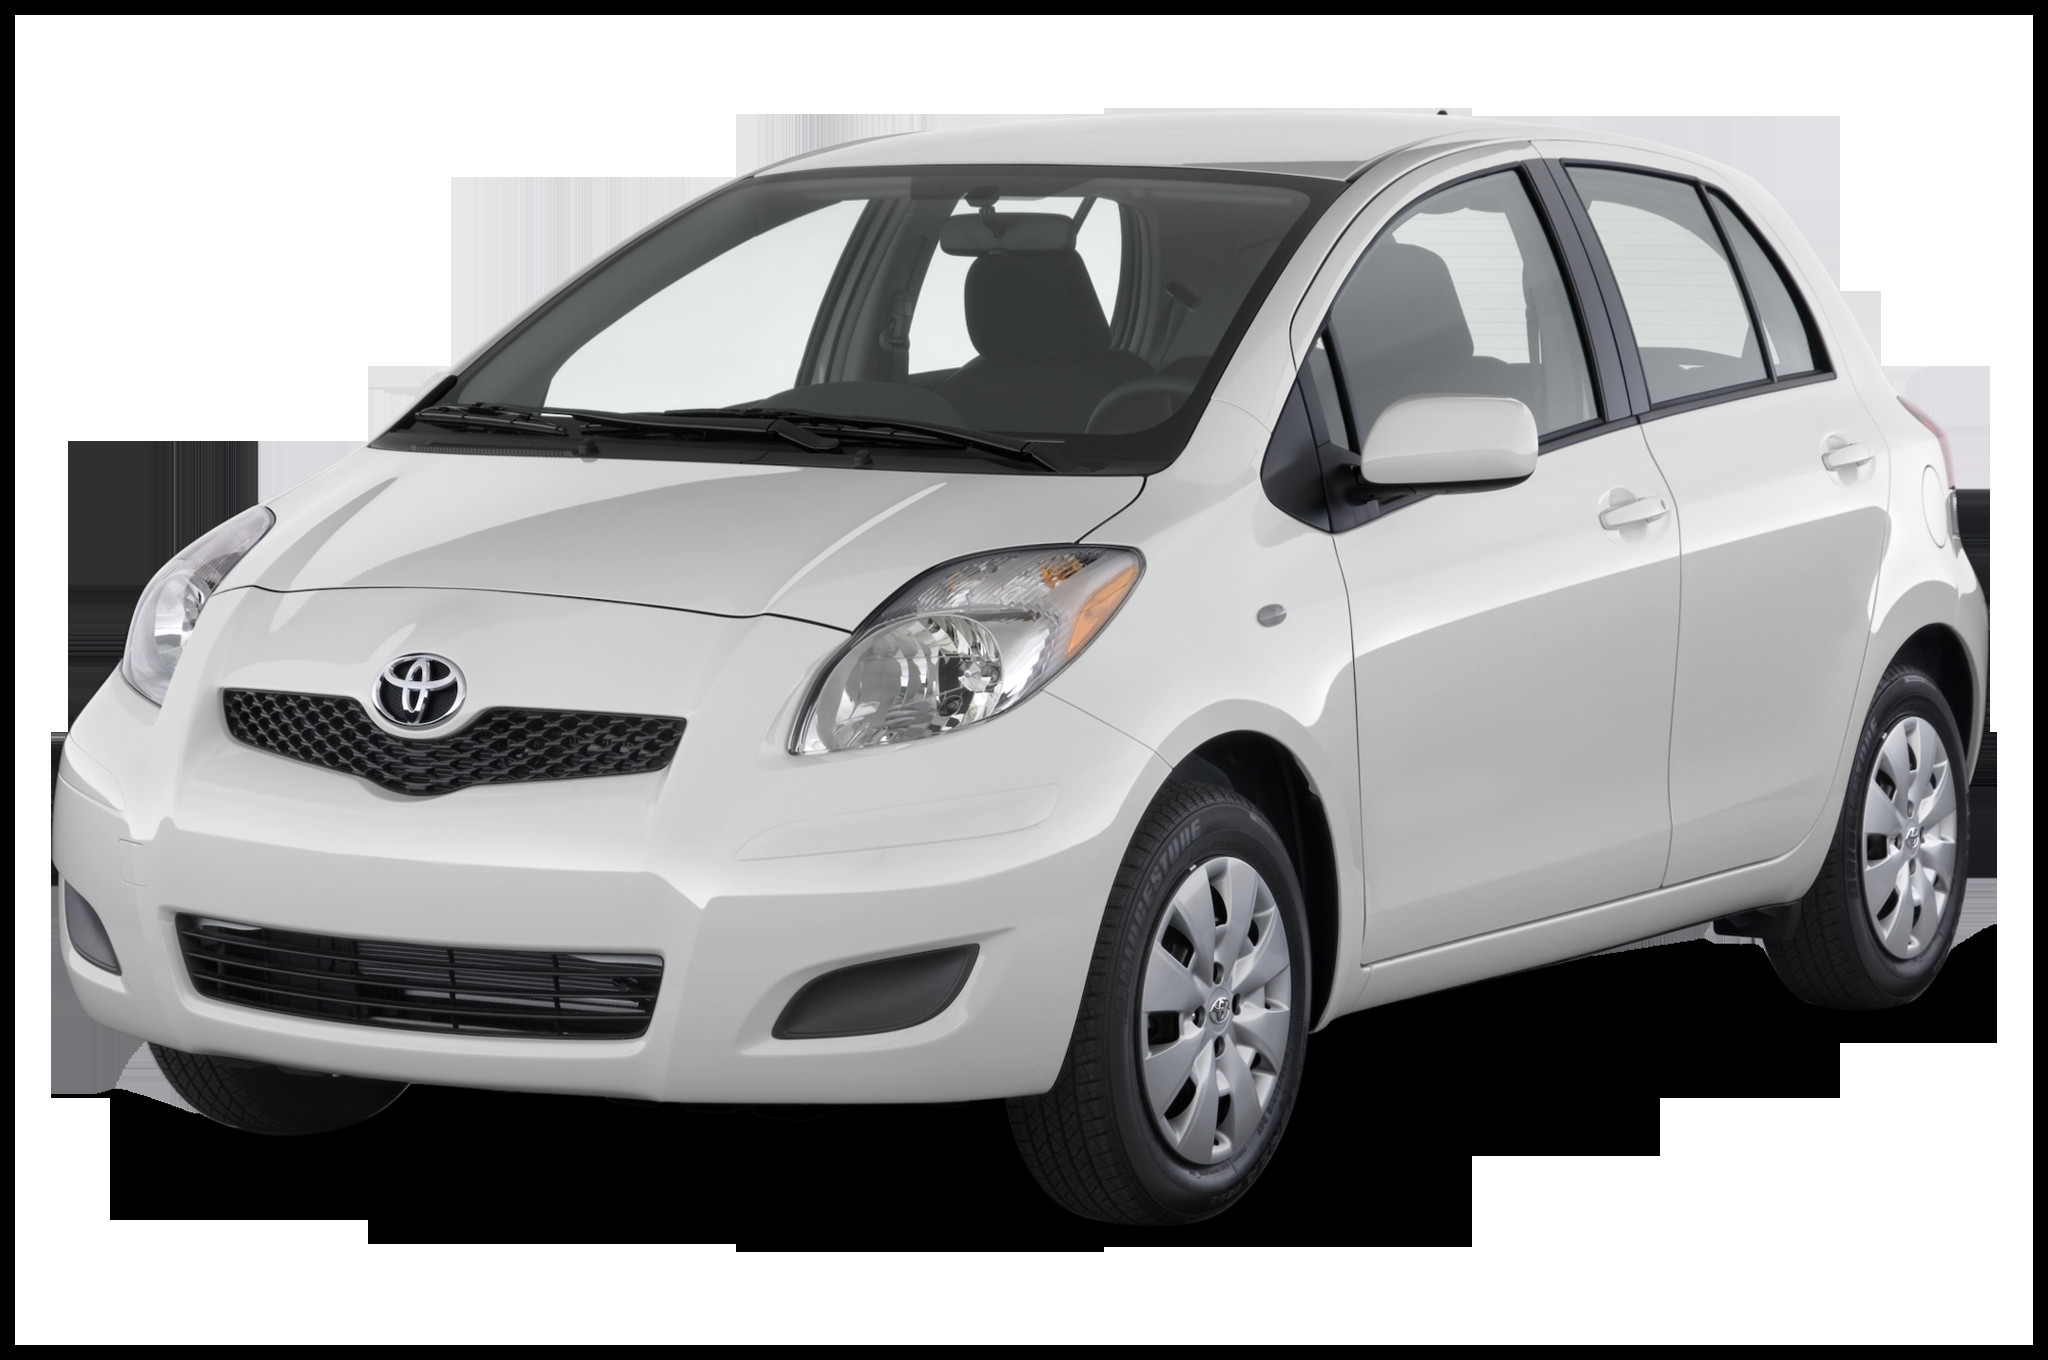 Toyota Yaris Mpg Luxury 2010 toyota Yaris Reviews and Rating